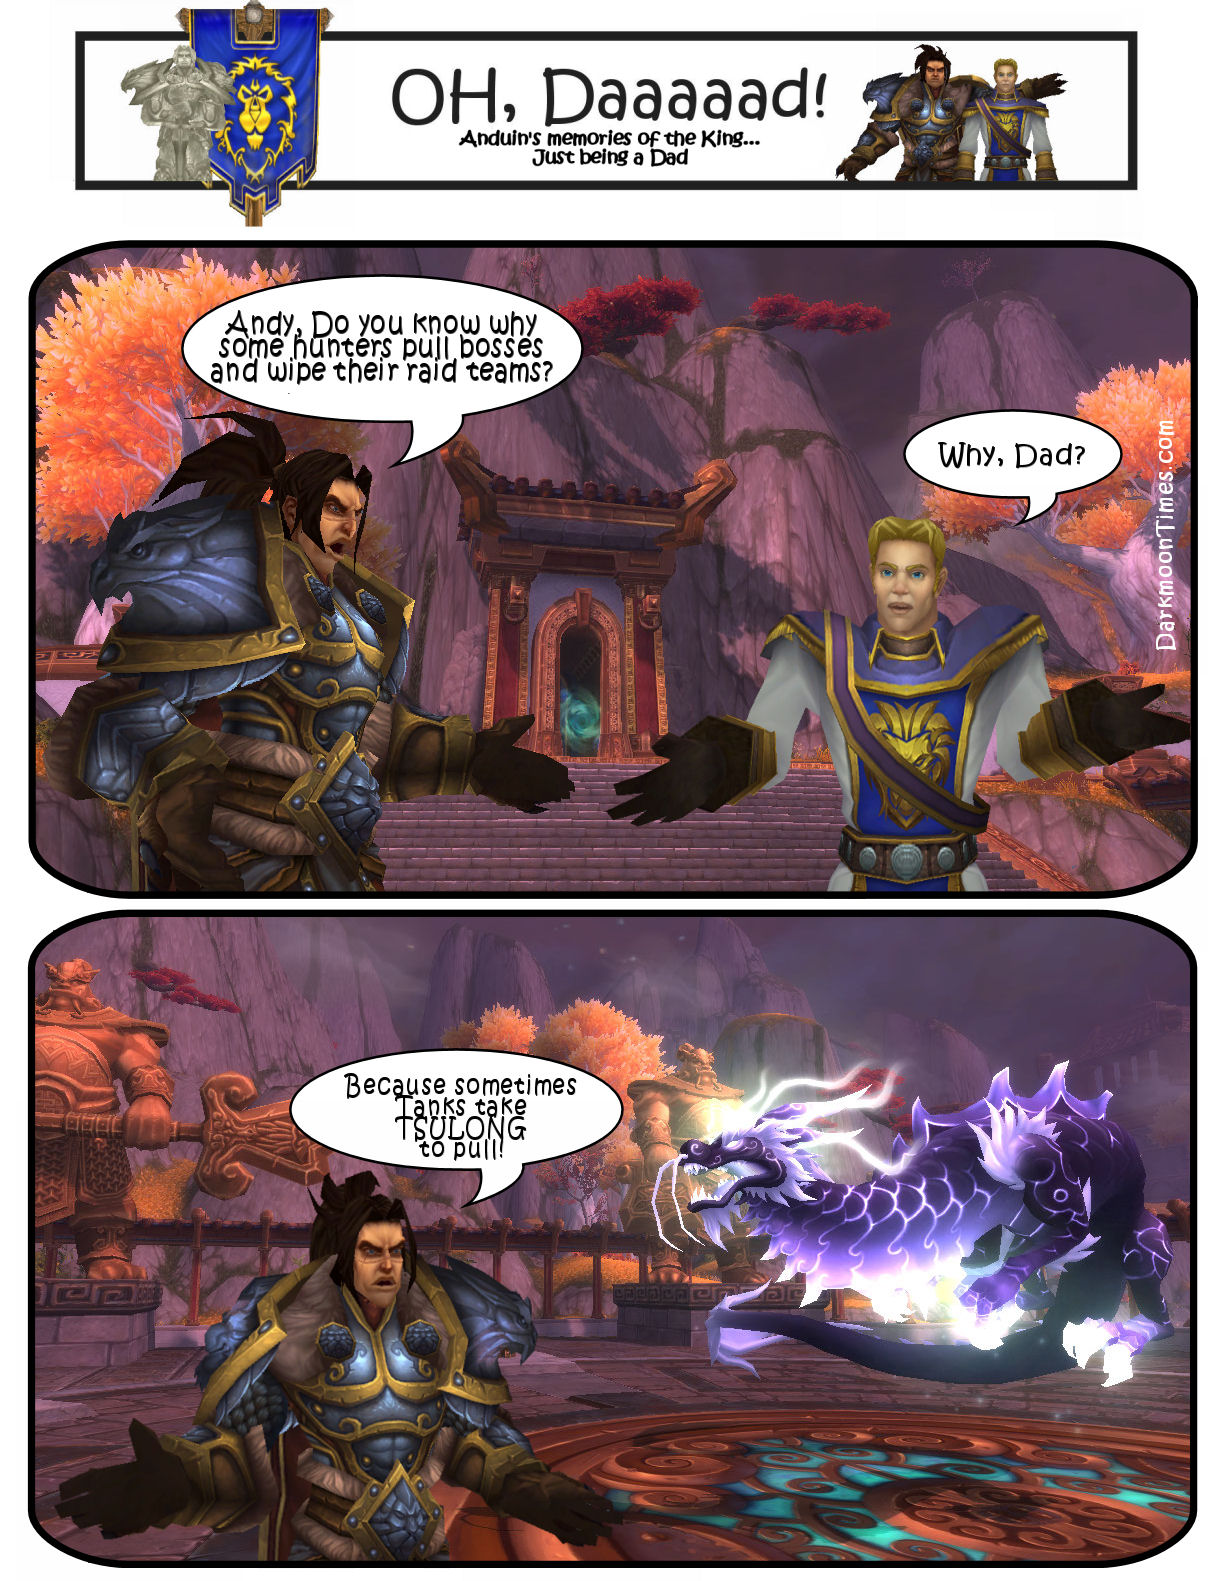 Image shows Varian asking Anduin Whyte do some hunters pull bosses? Because sometimes tanks take TSULONG to pull